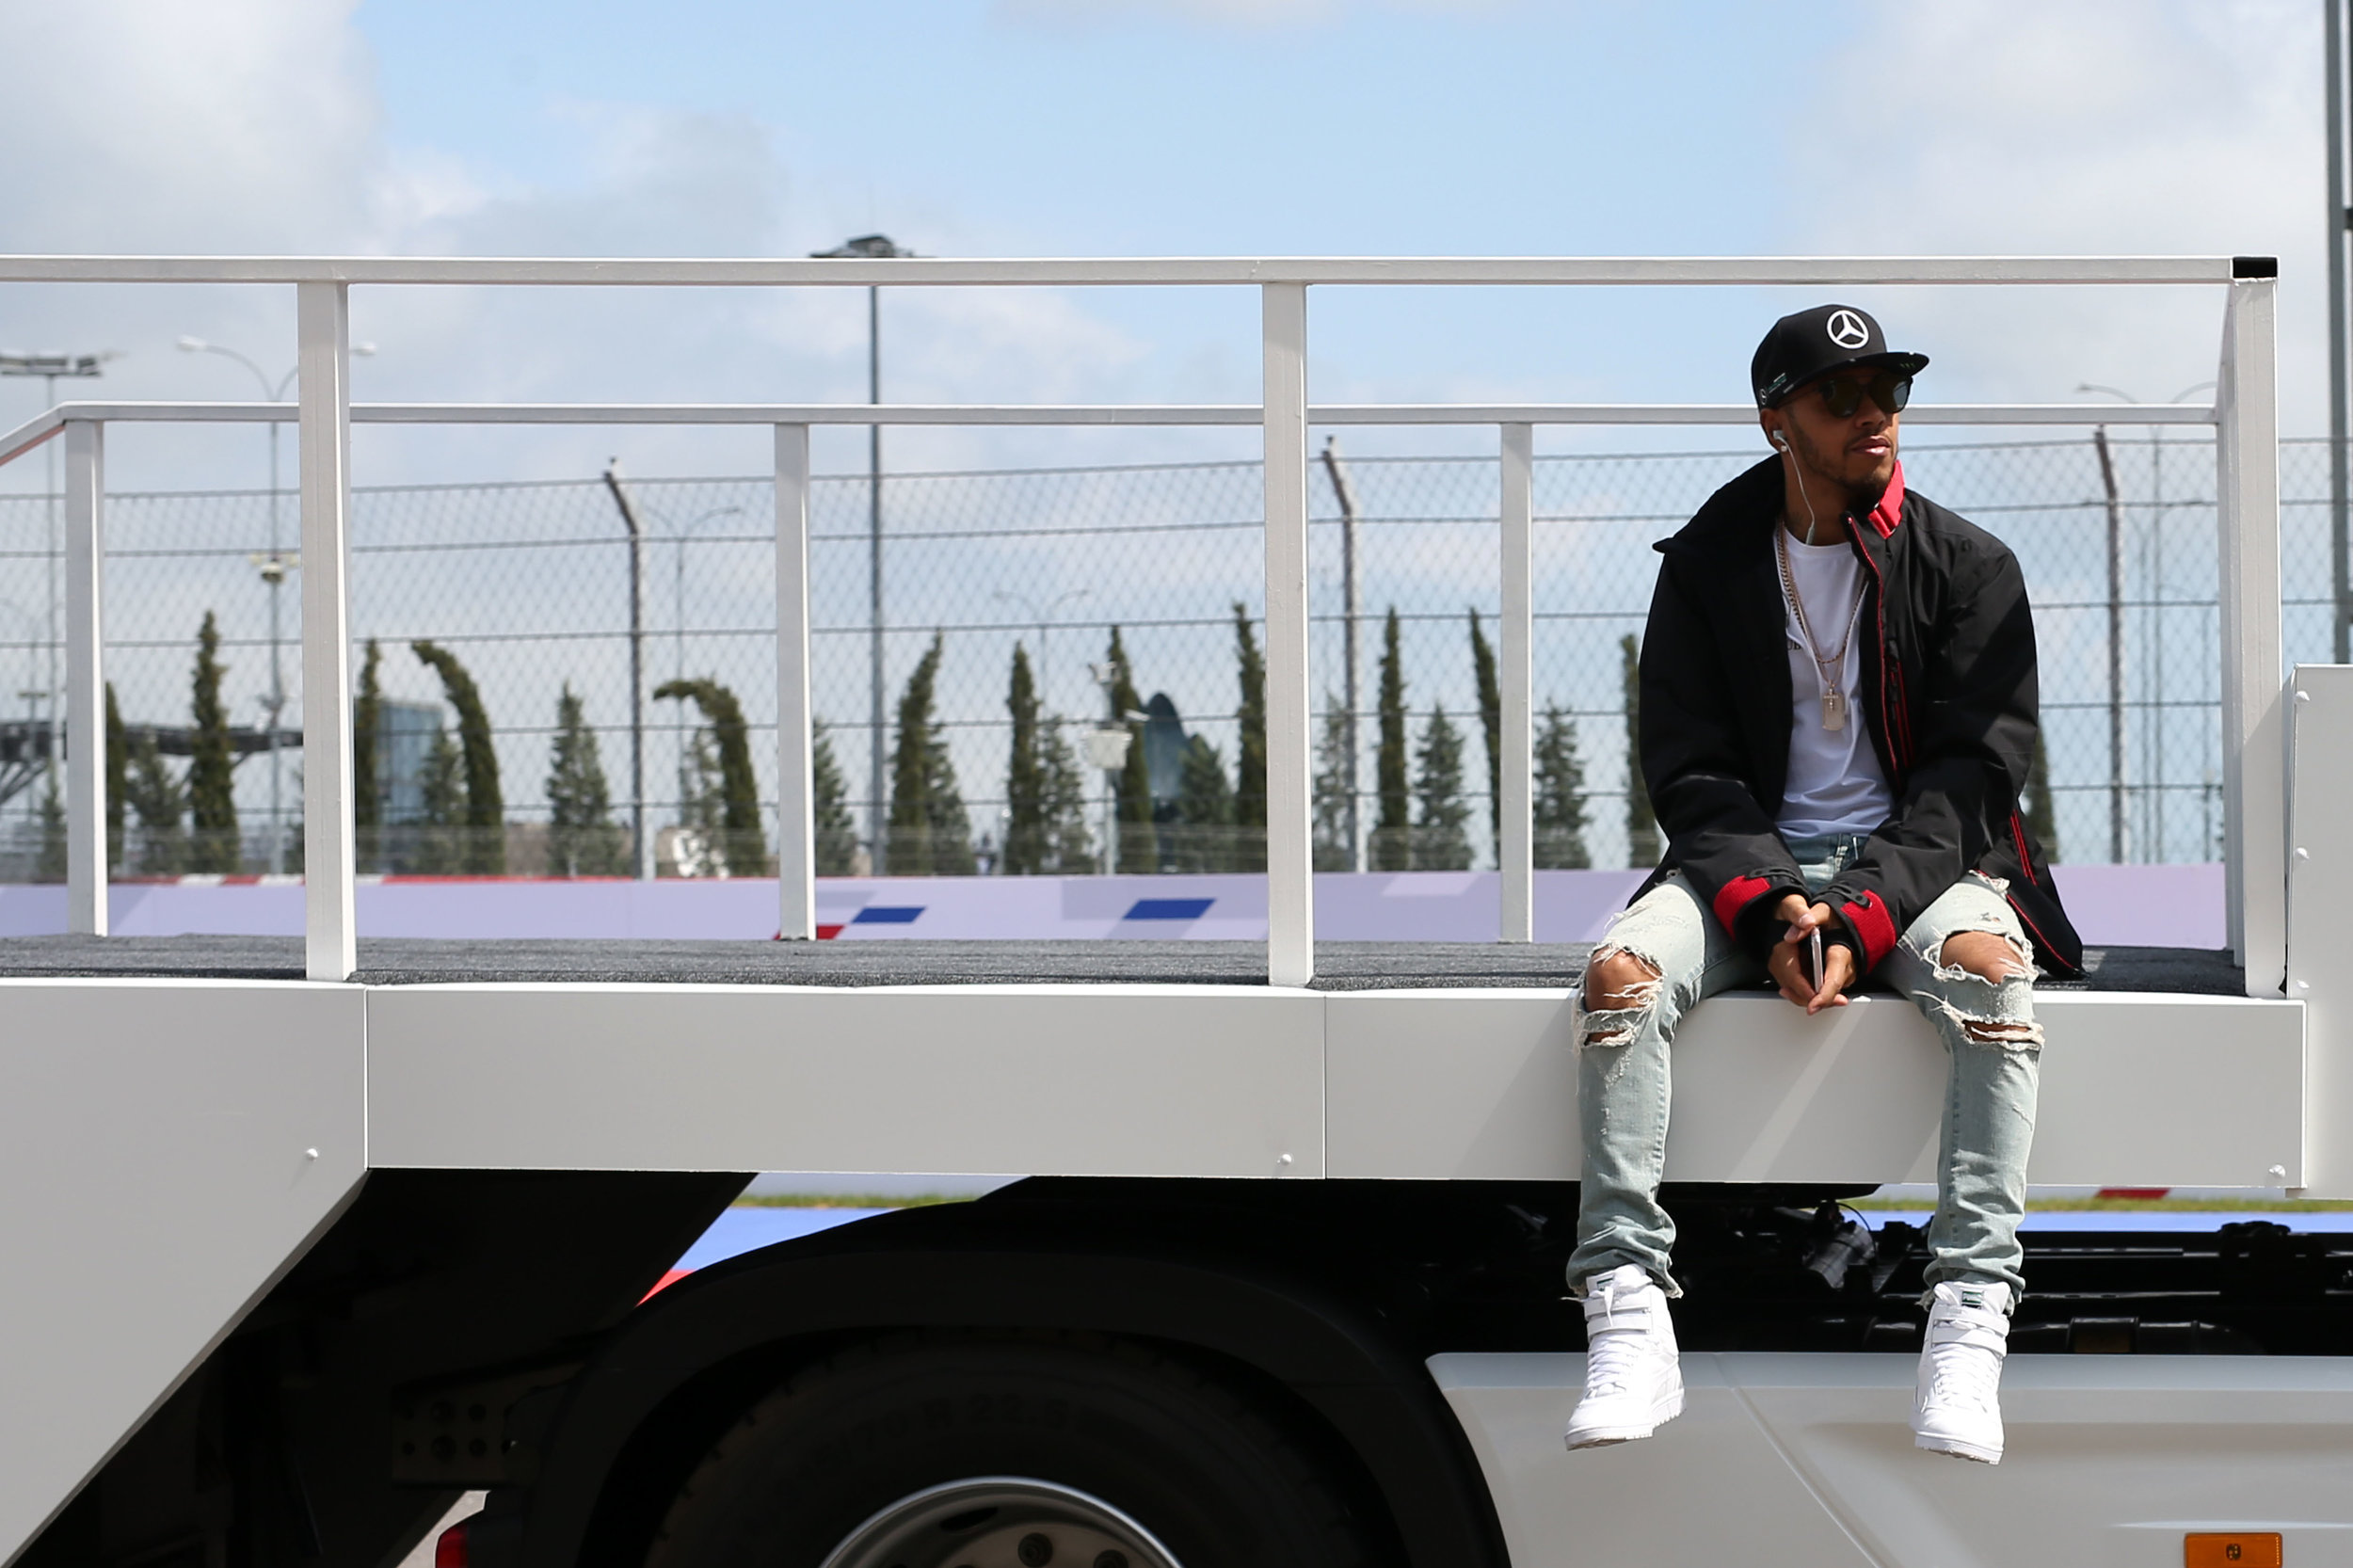 Lewis Hamilton dreams in vain of reliability in his car and in the knees of his jeans. (pic: Mercedes)